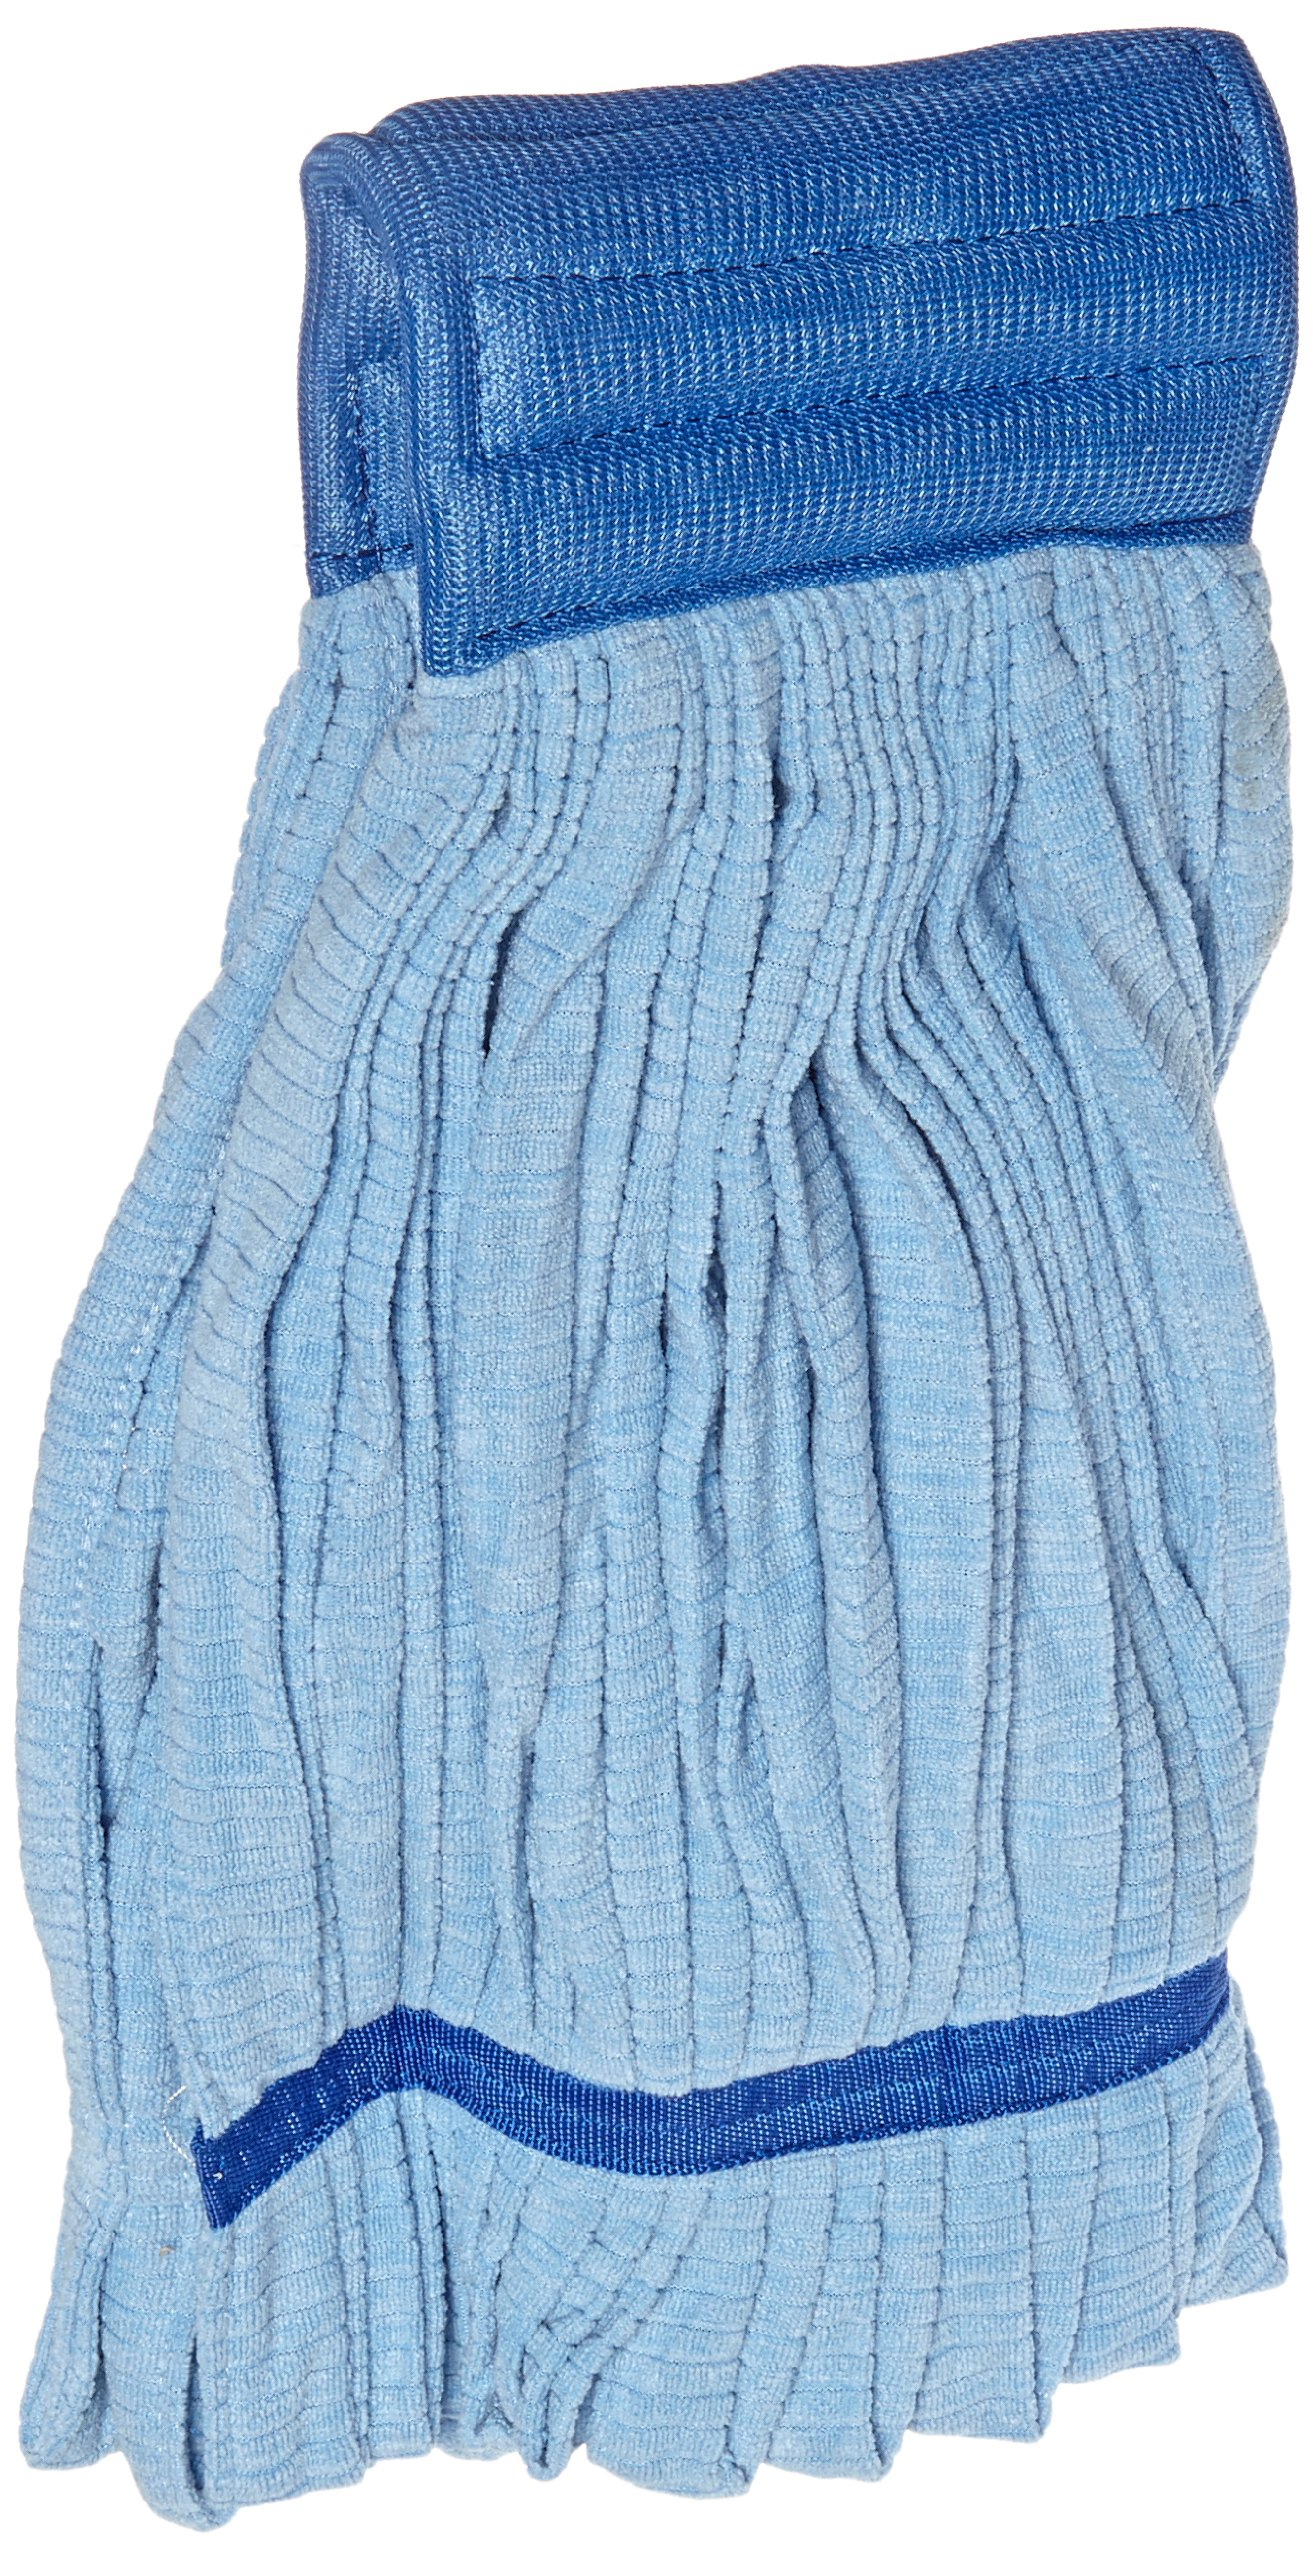 Impact 3118 Microfiber Tube Wet Mop with Mesh Headband, Large, Blue (Case of 12) by Impact Products (Image #1)